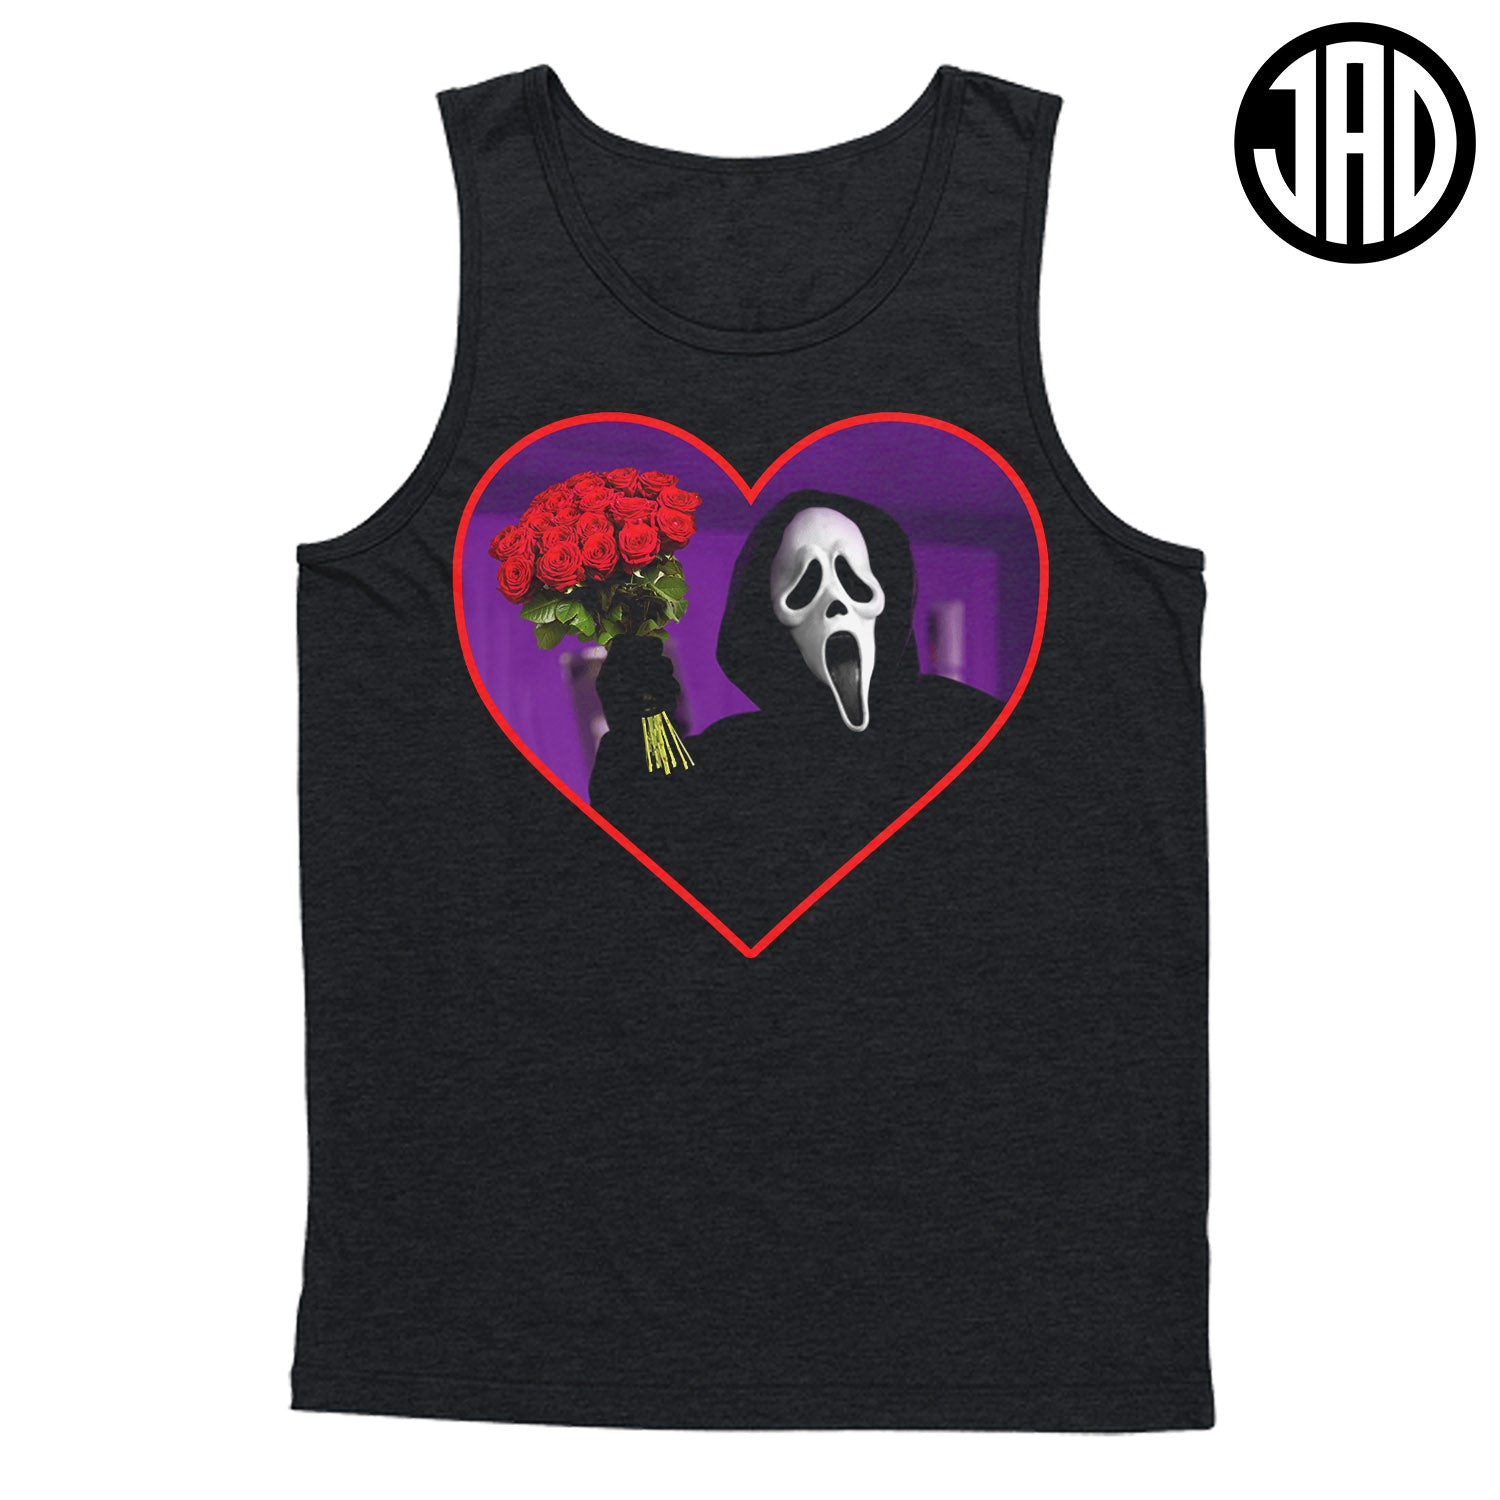 Don't Hang Up On Me - Men's (Unisex) Tank